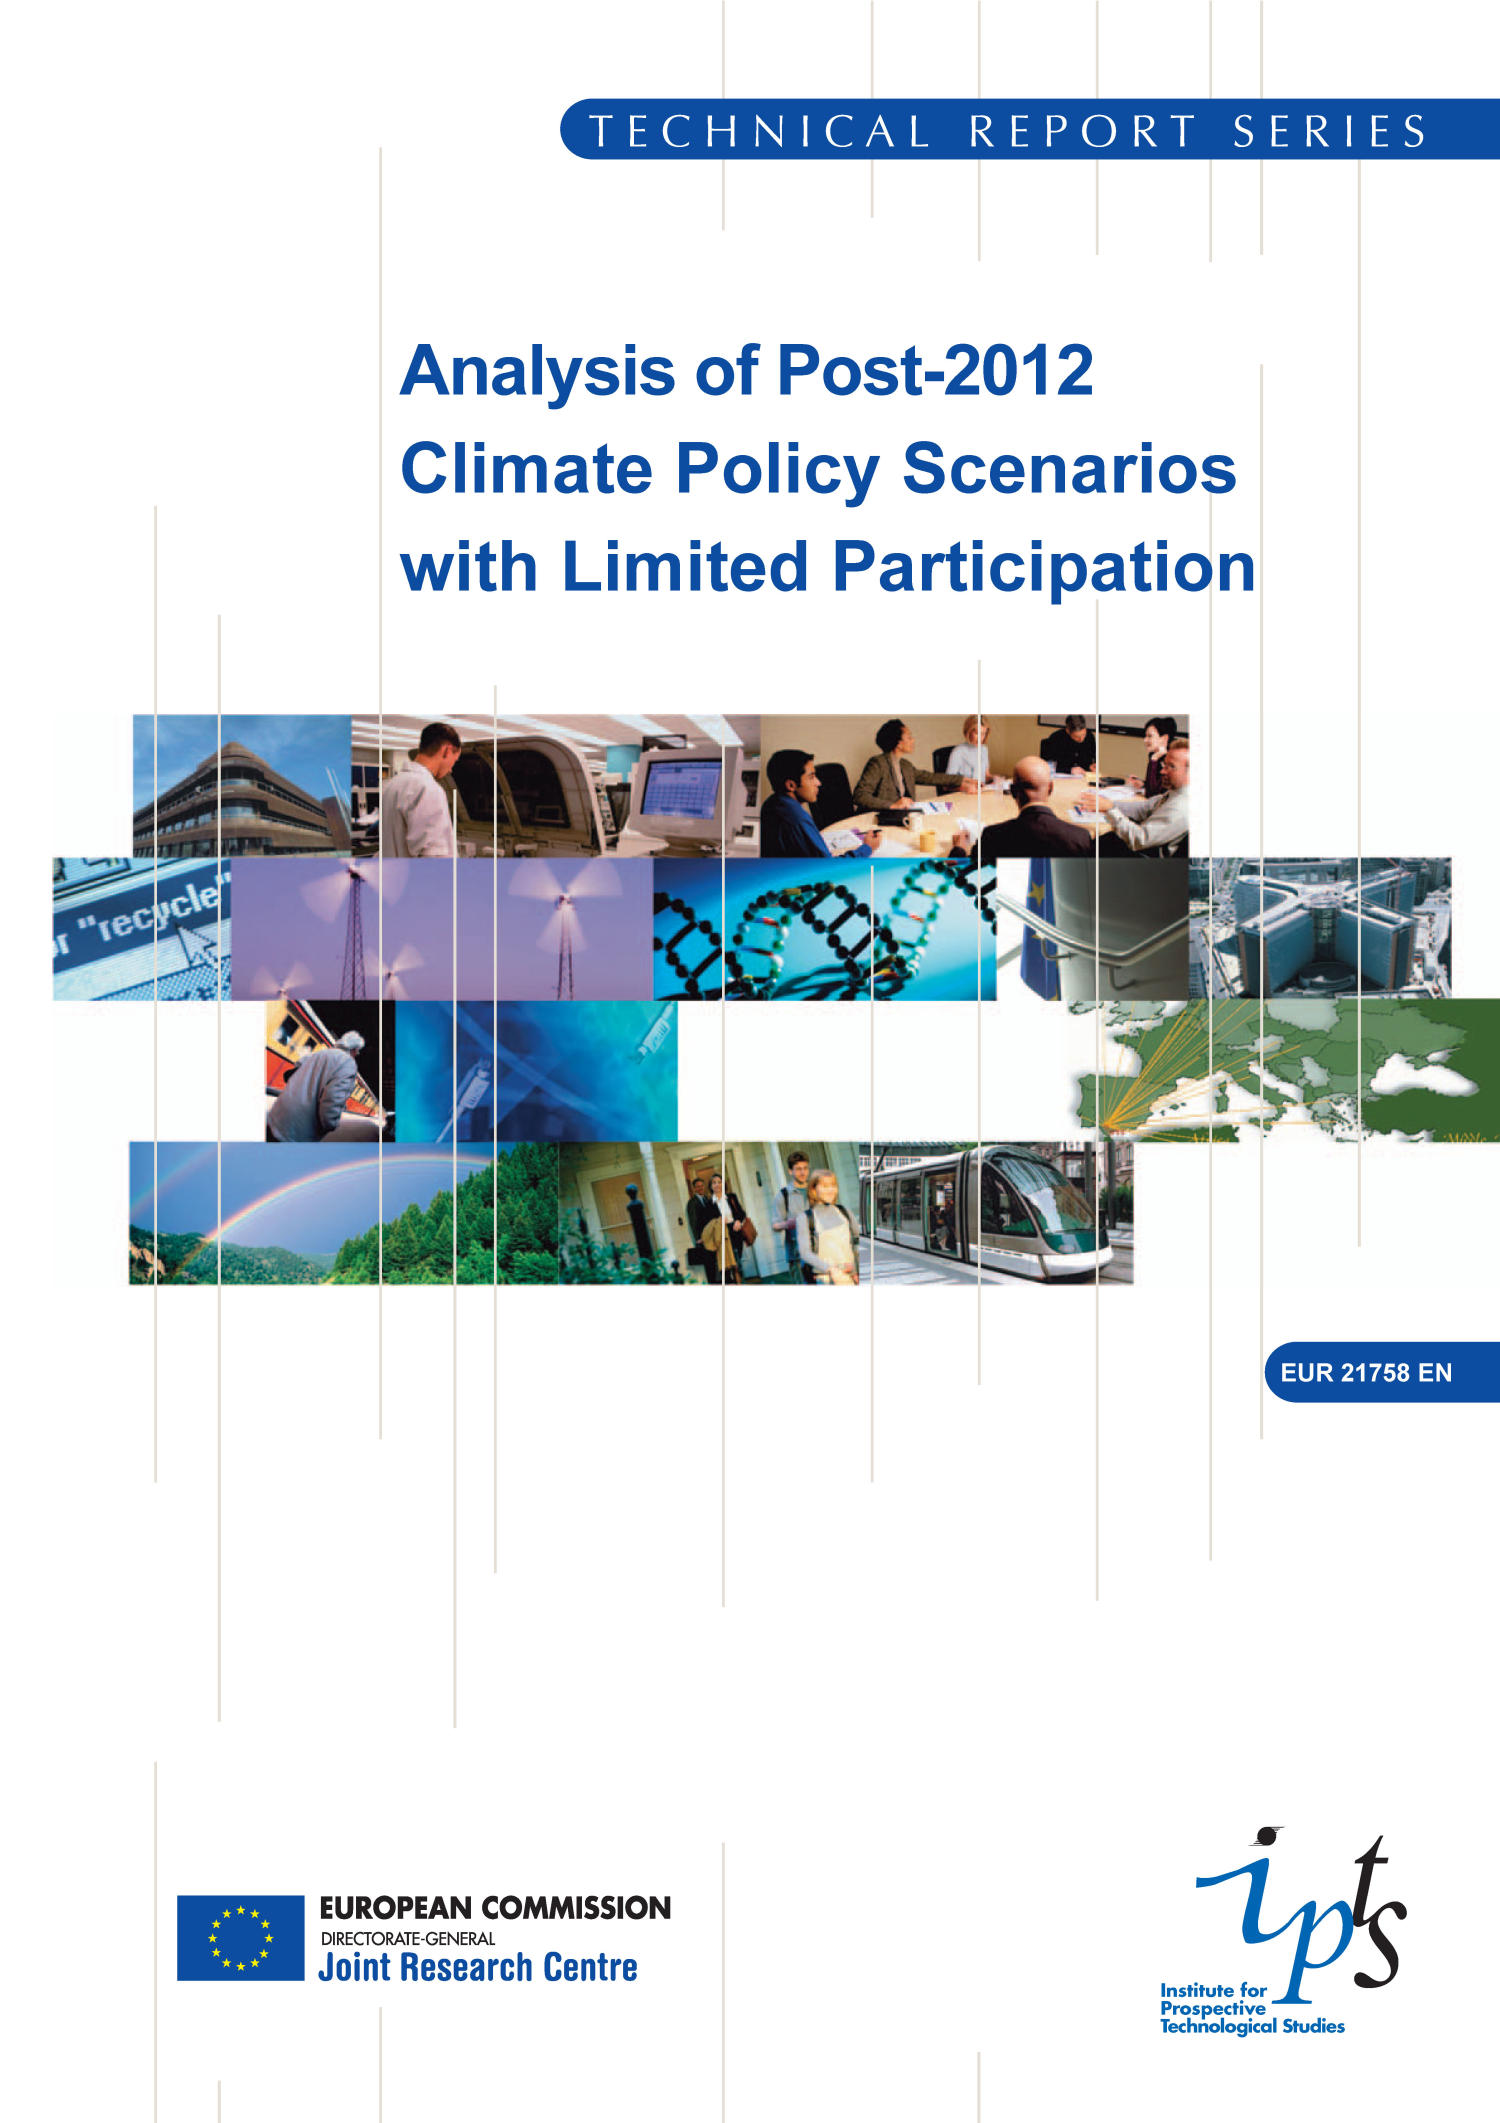 Analysis of Post-2012 Climate Policy Scenarios with Limited Participation                                                                                                      Front Cover